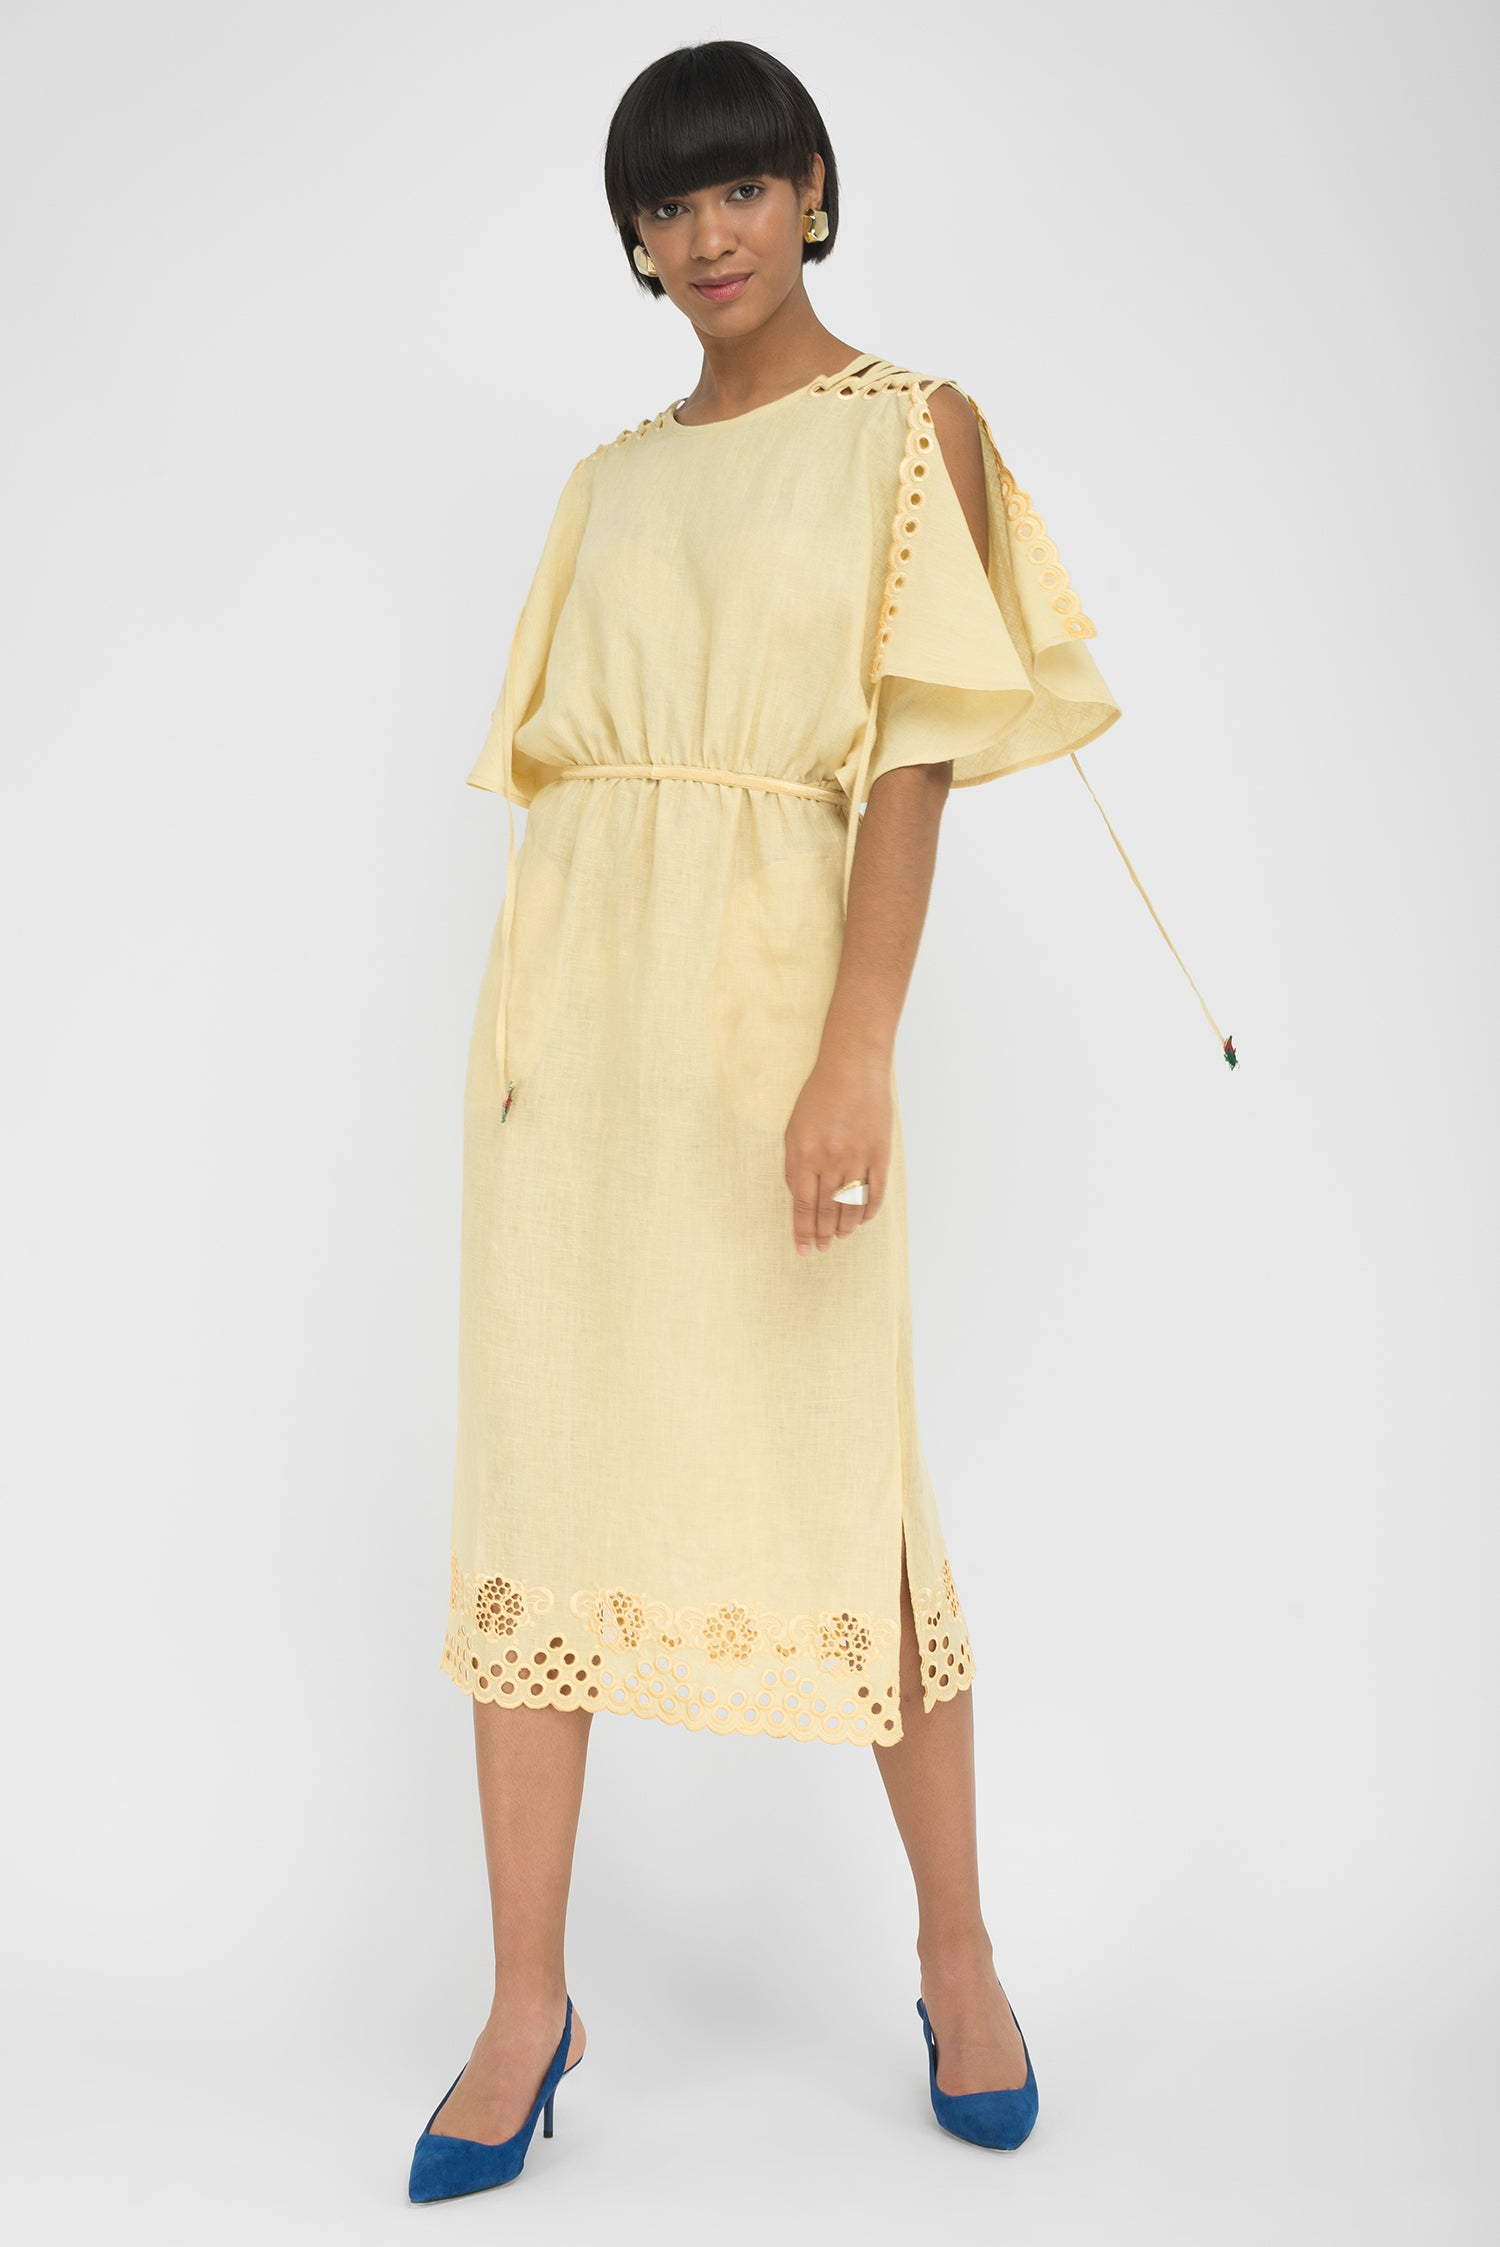 FANM MON SIDE Light Yellow Linen Open Shoulder Embroidered Midi Dress